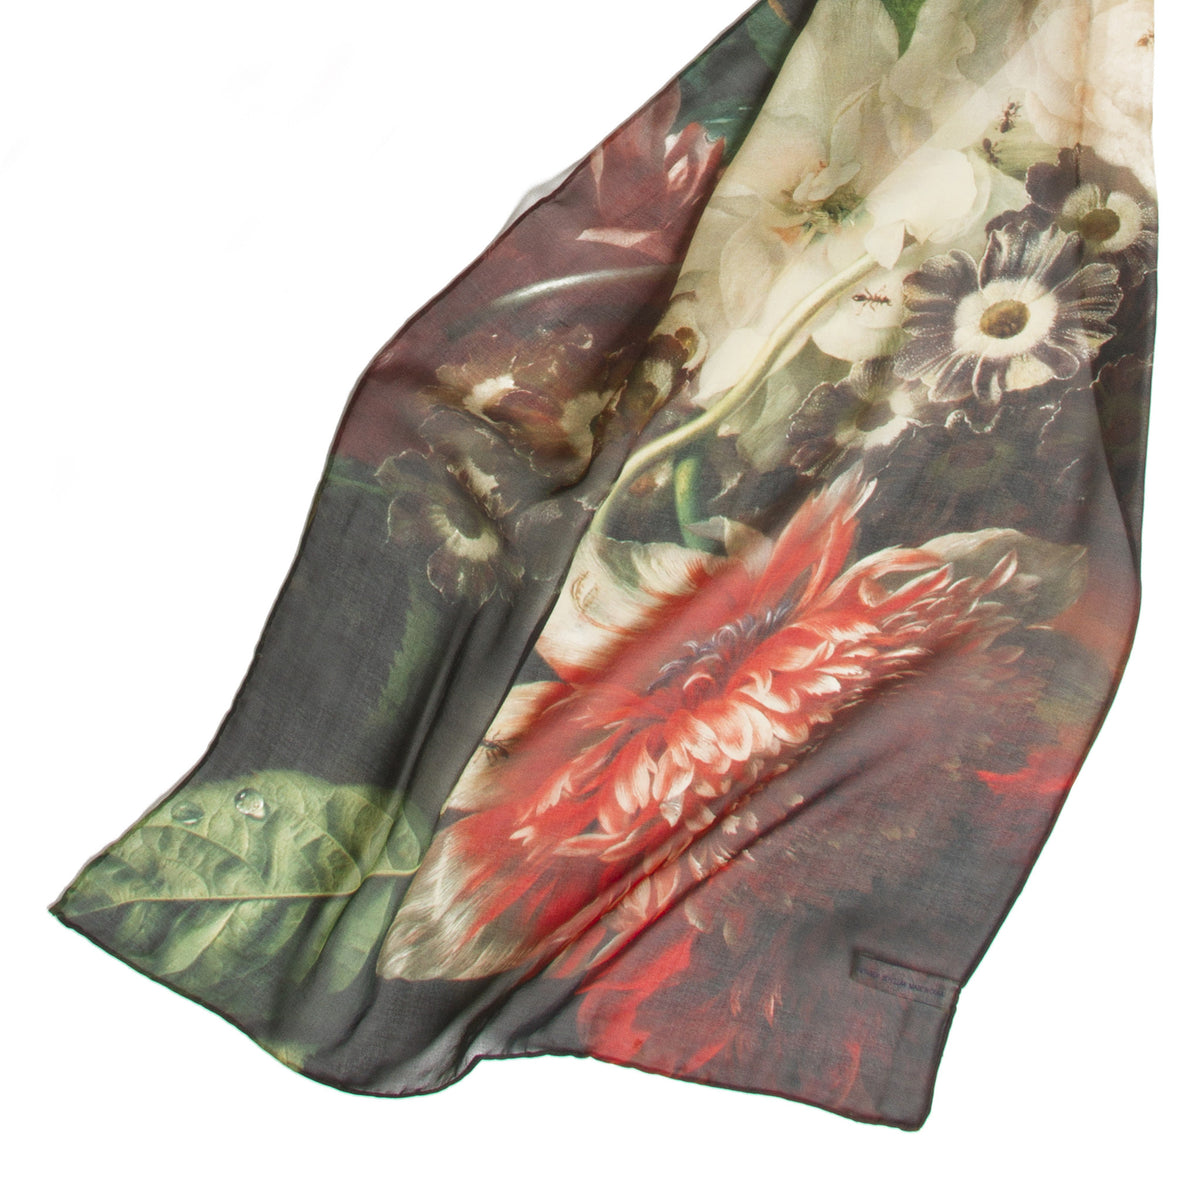 Vase of Flowers Silk Scarf detail of sheerness | Getty Store